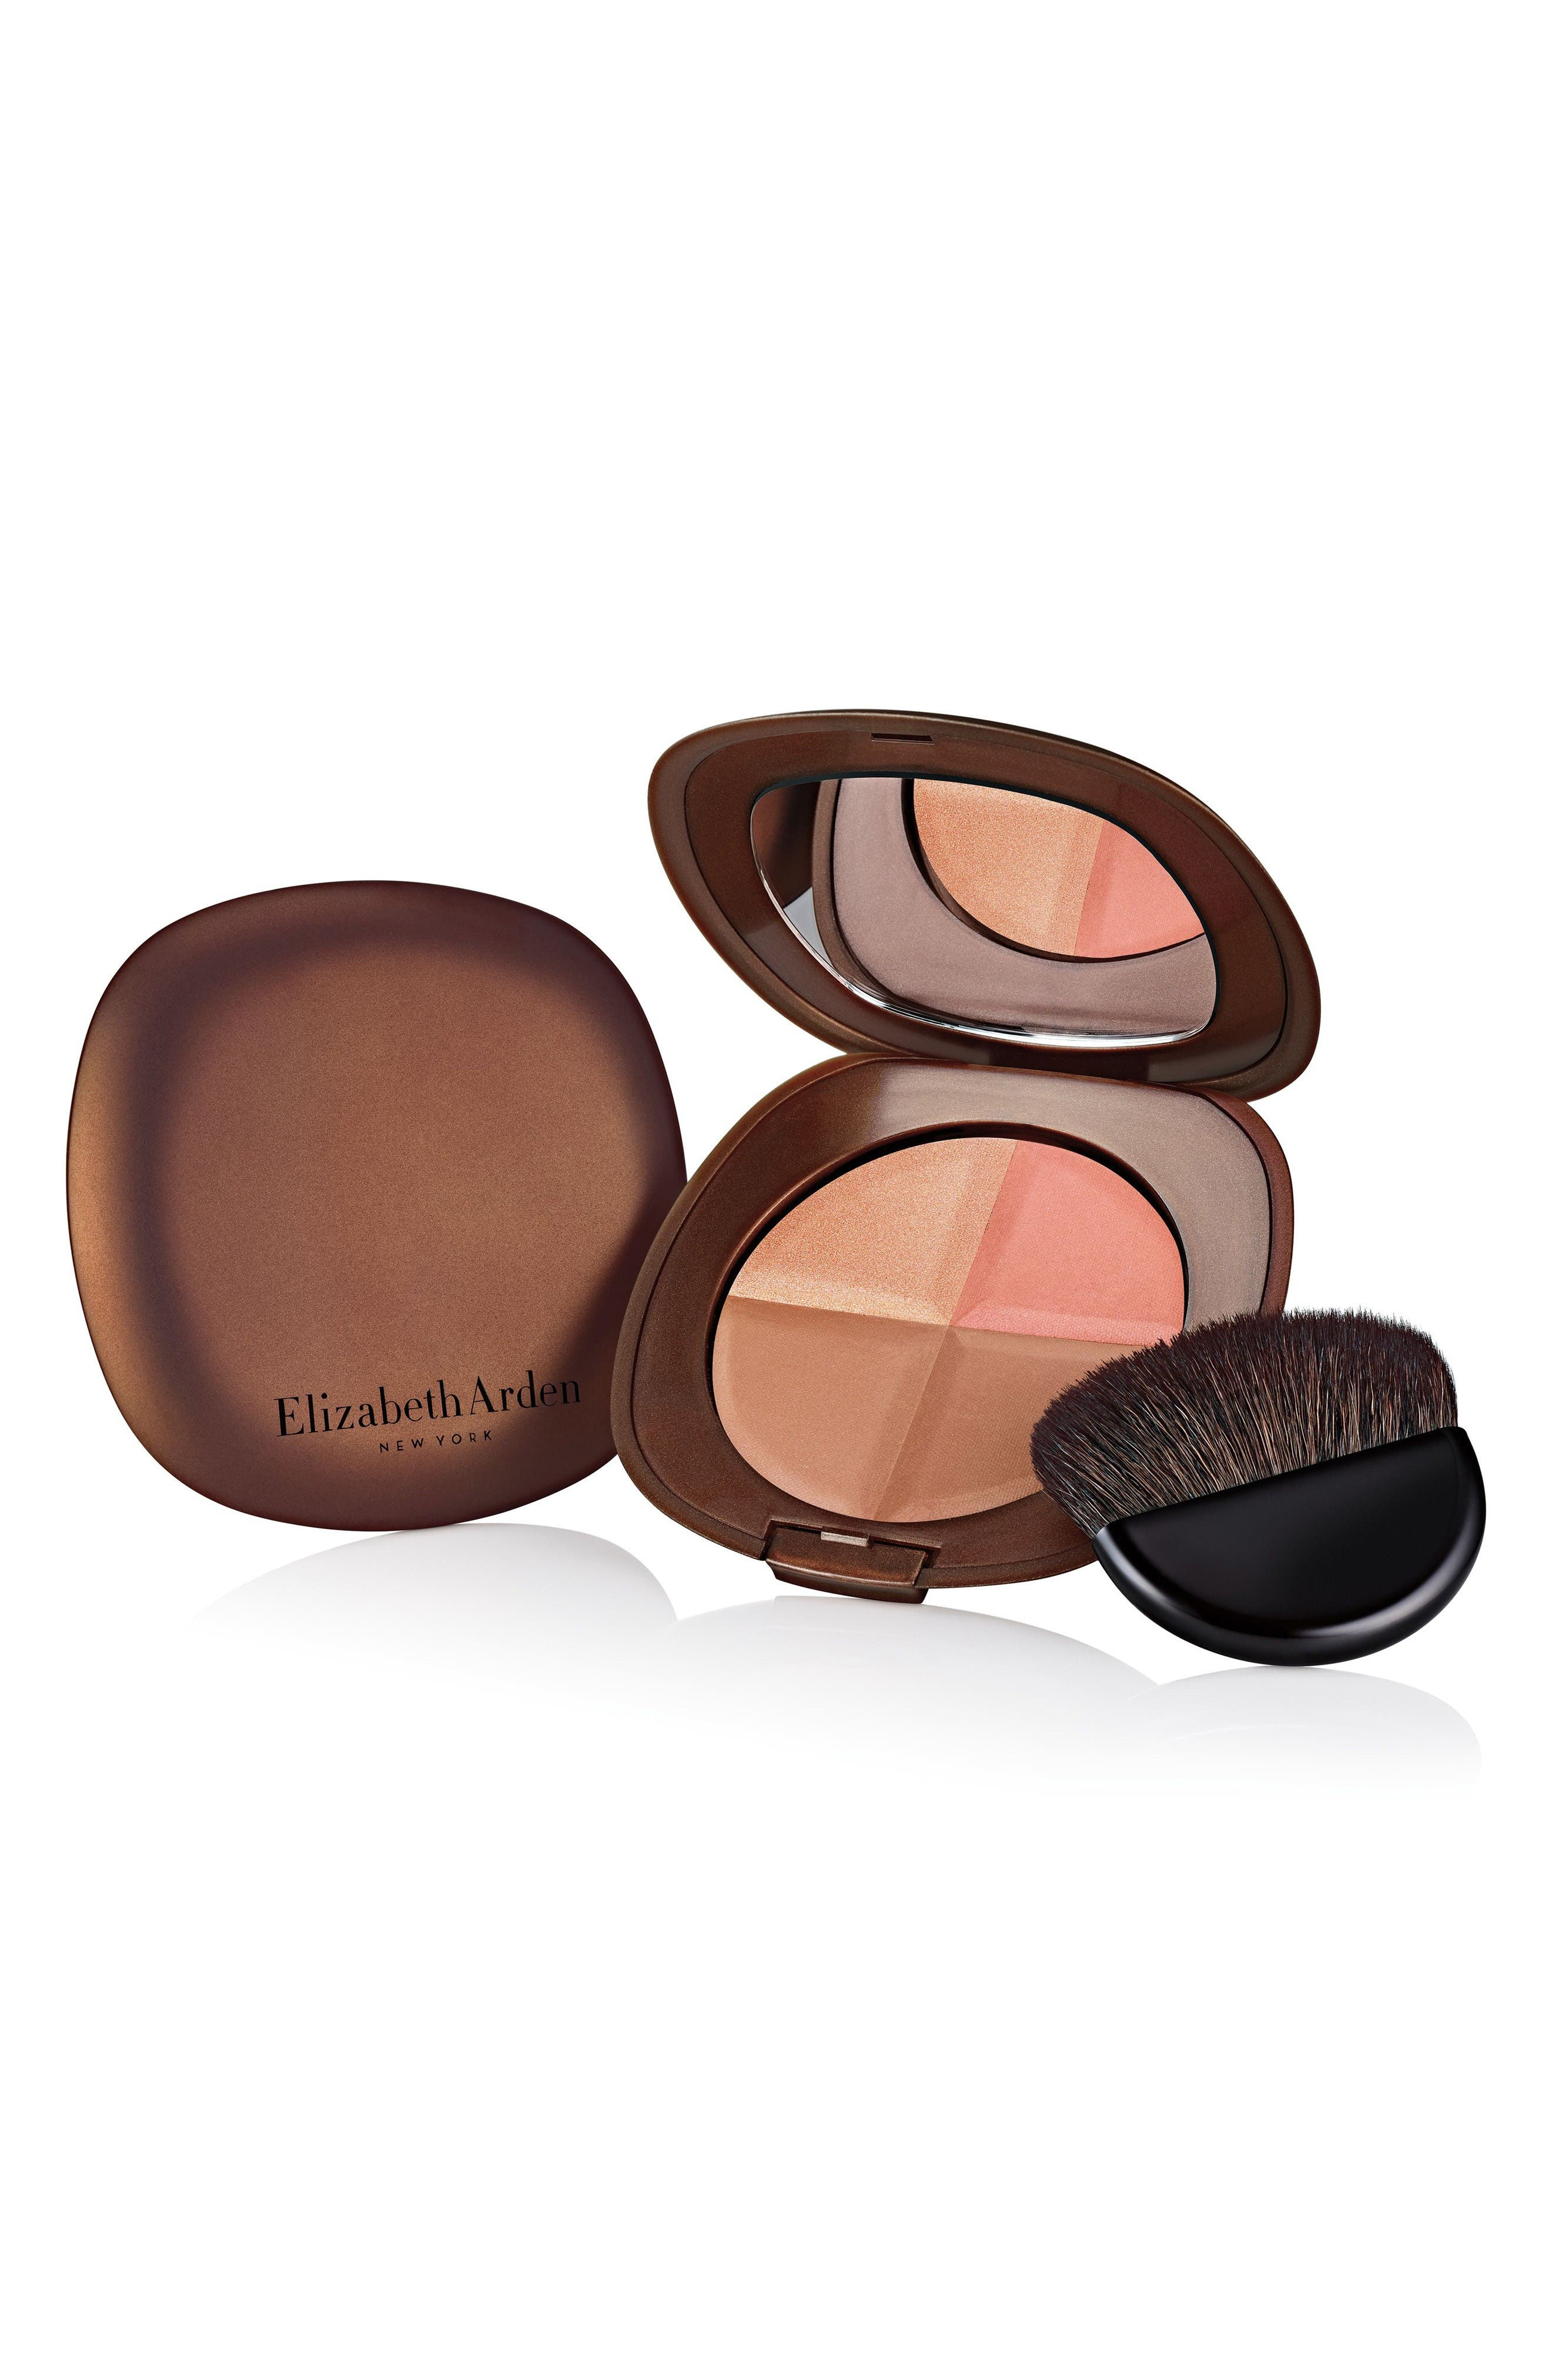 Main Image - Elizabeth Arden Tropical Escape Forever Bronzed Bronzing Powder